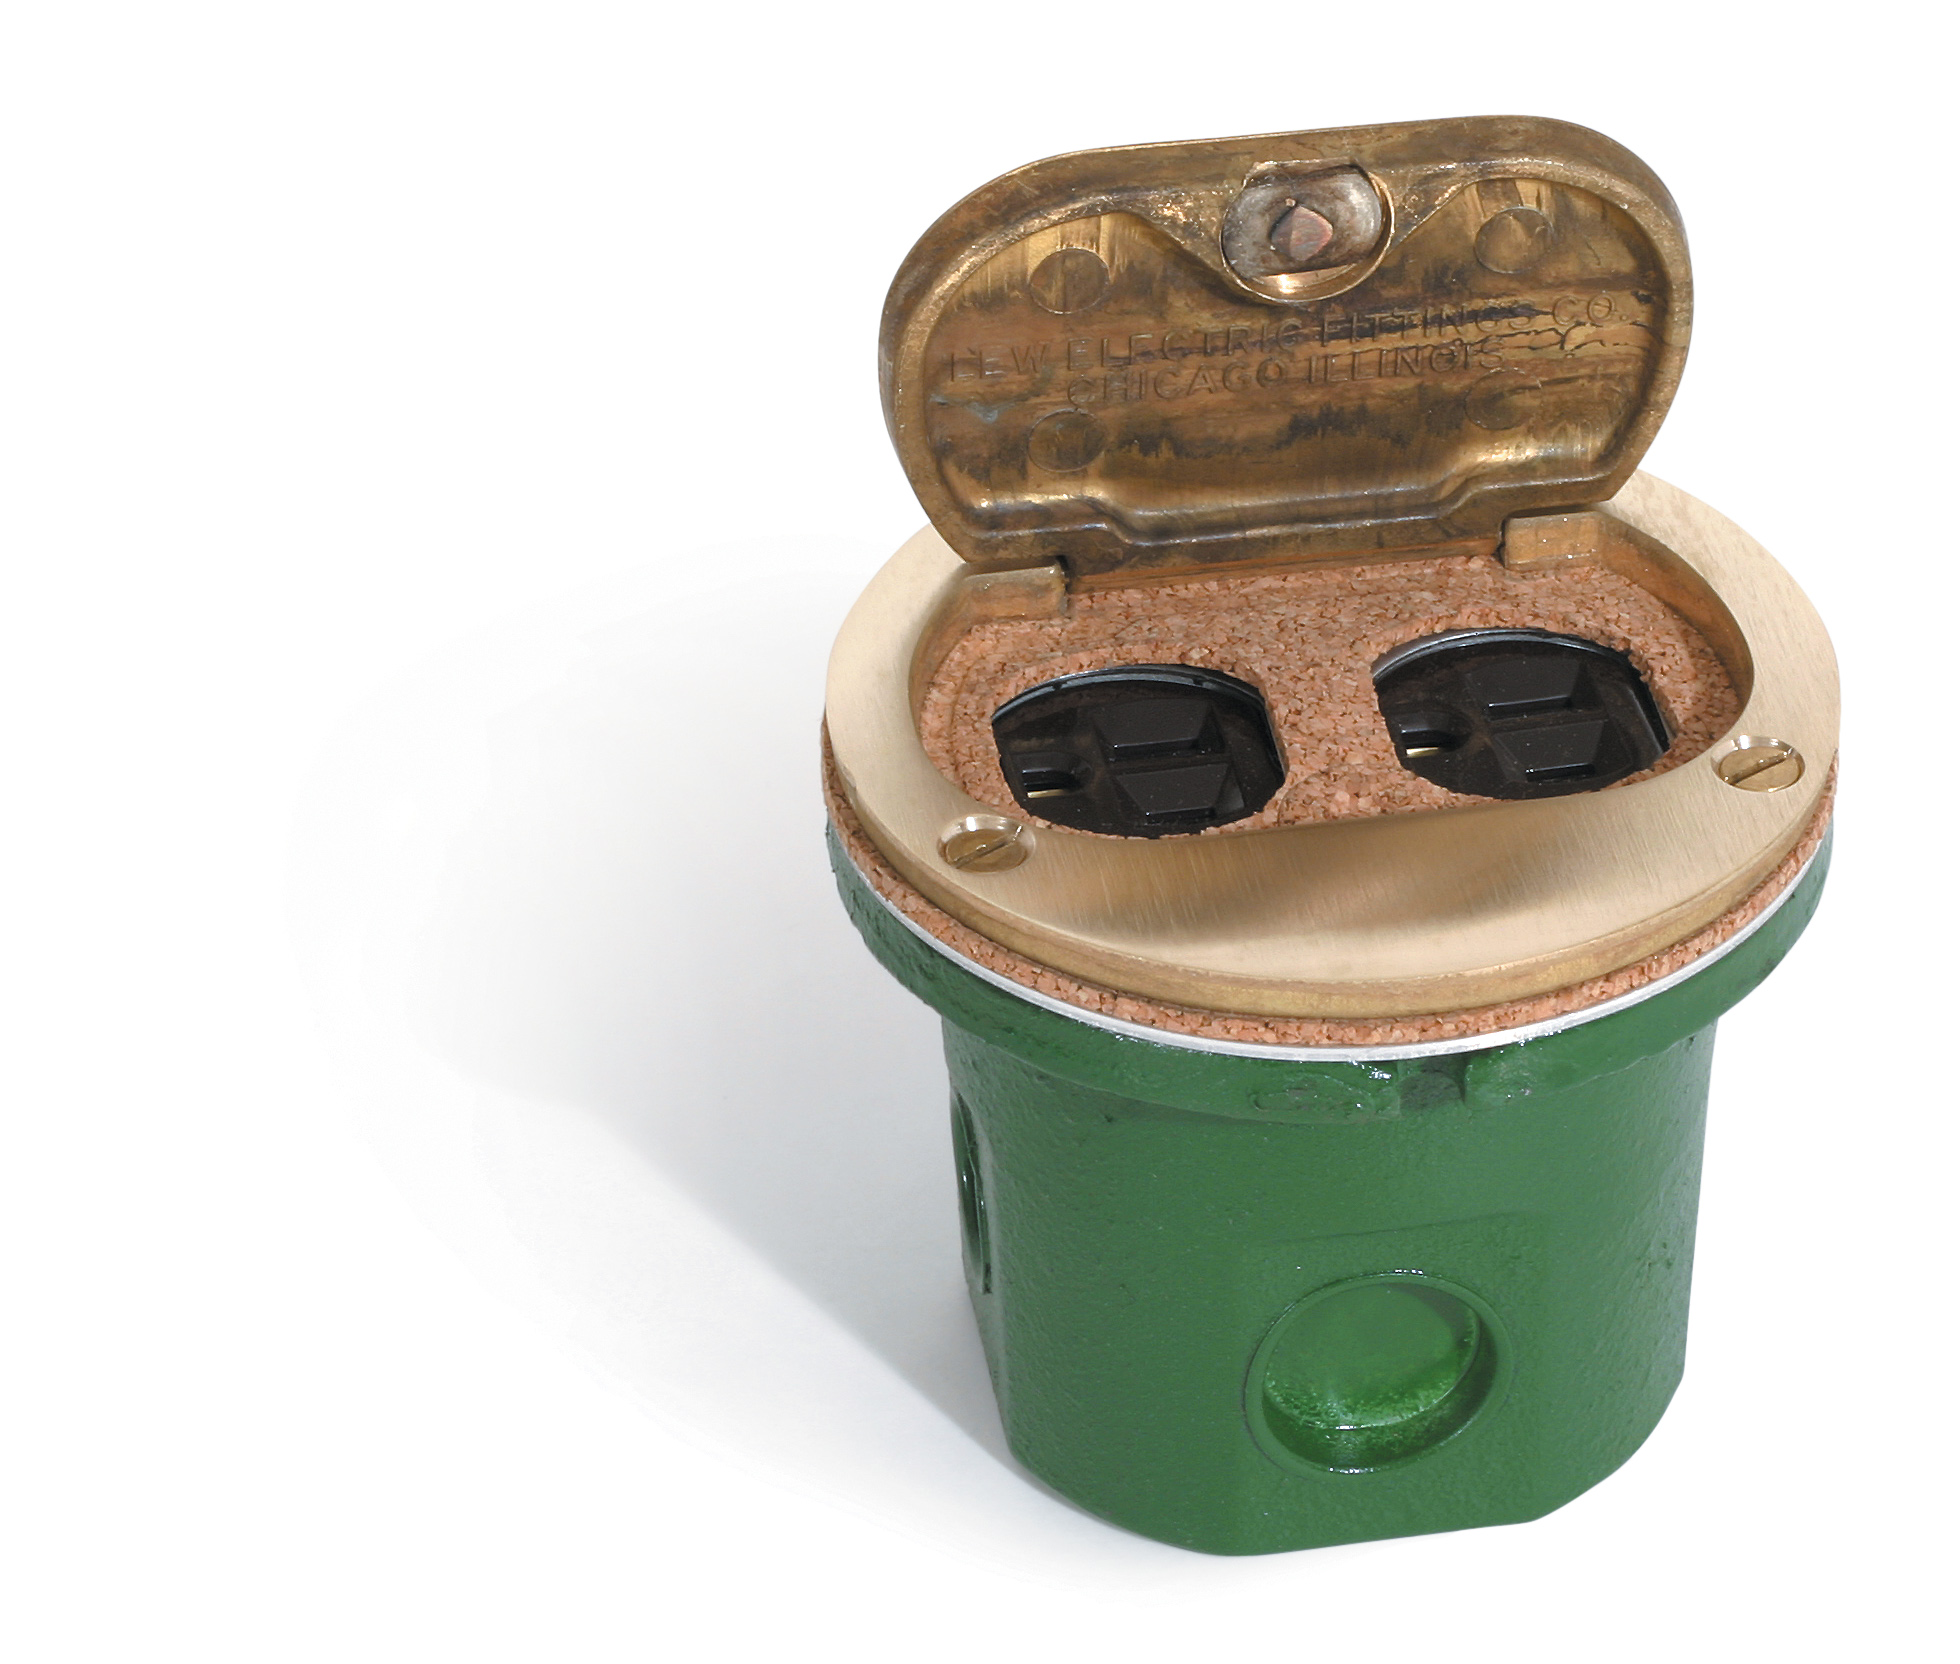 Lew Electric Fittings,812-DFBW/DFB-1,Lew Electric Fittings 812-DFBW/DFB-1 Residential Floor Box, Round, Duplex Receptacle, Material: Metallic, Size: 3.125 IN Length X 4.000 IN Dia., Color: Brass, Rugged Construction, 14.5 CU-IN Cubic